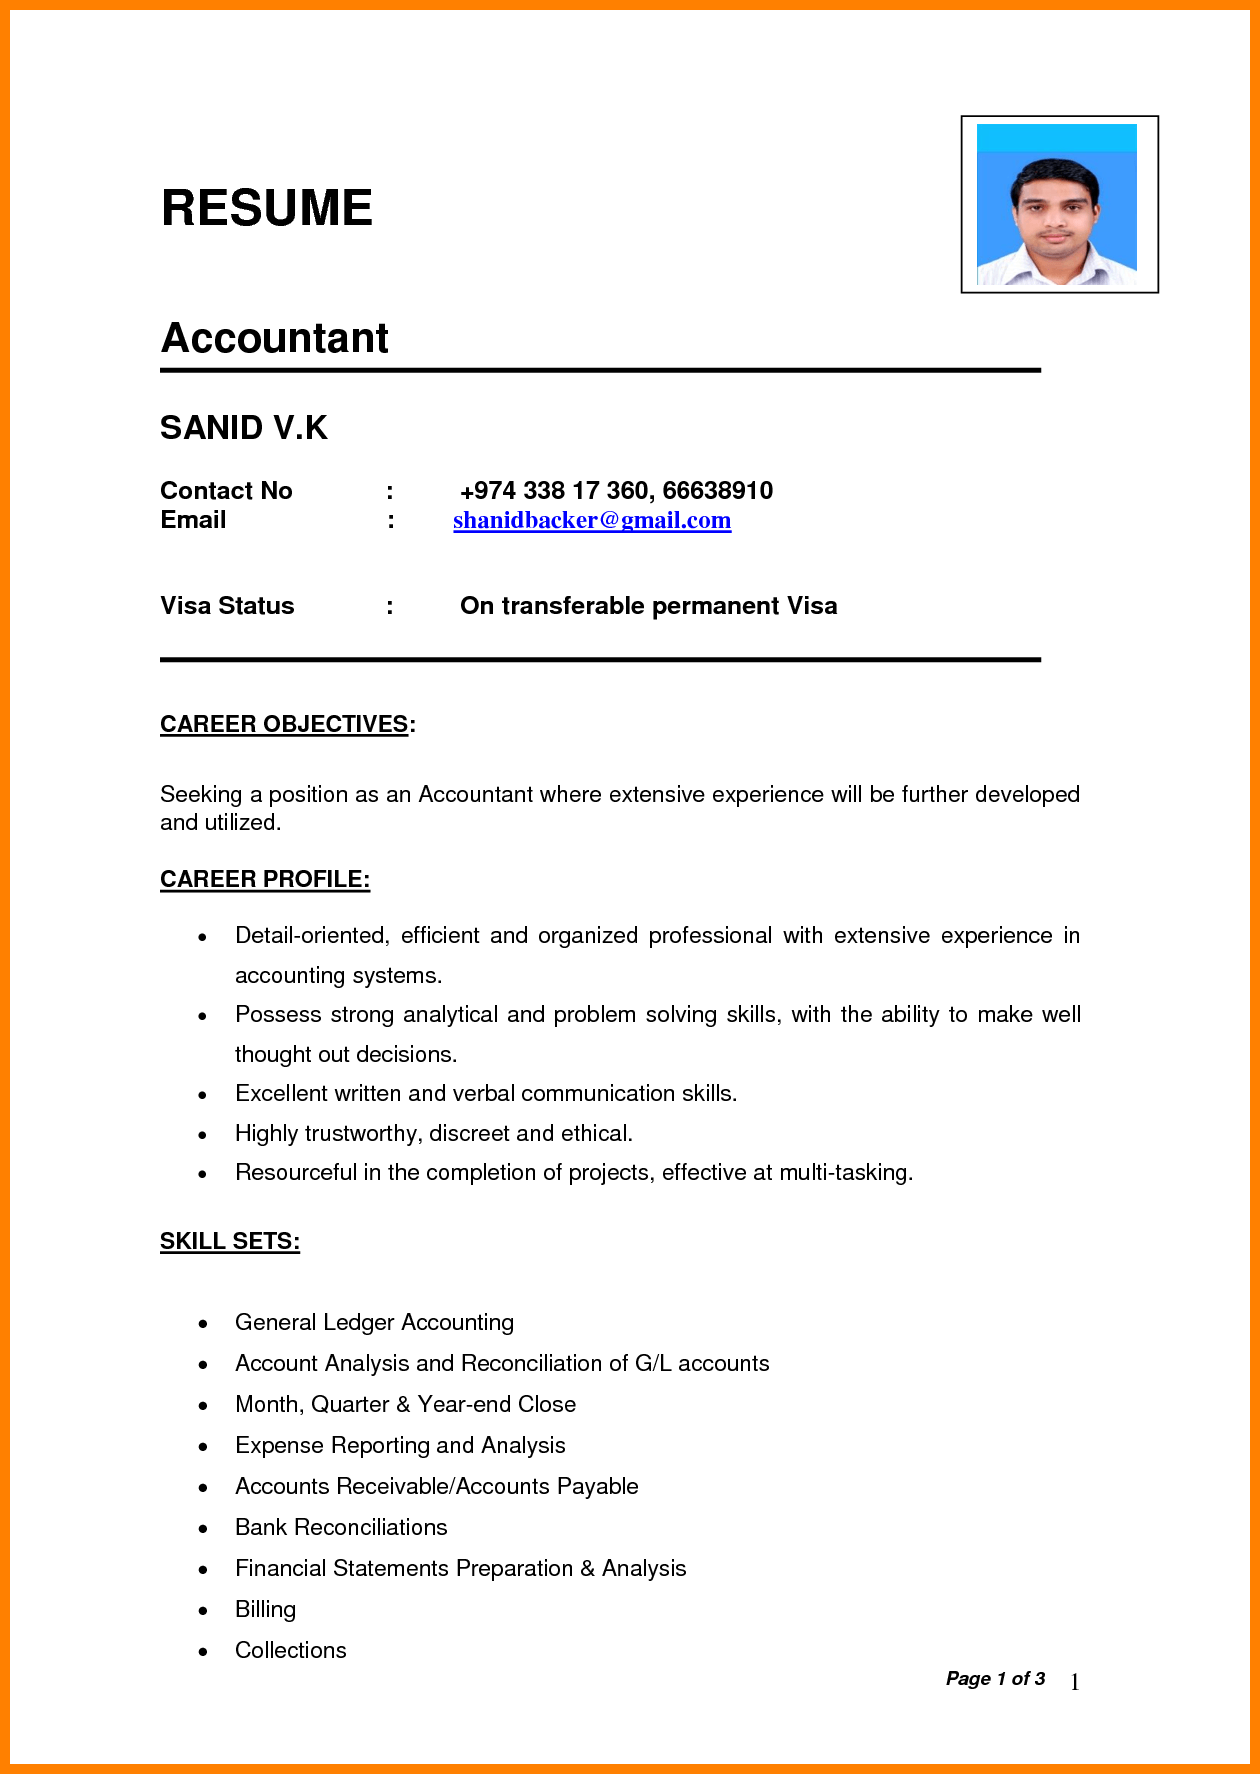 Curriculum Vitae Format Pdfdian Chef Resume Sample For Job